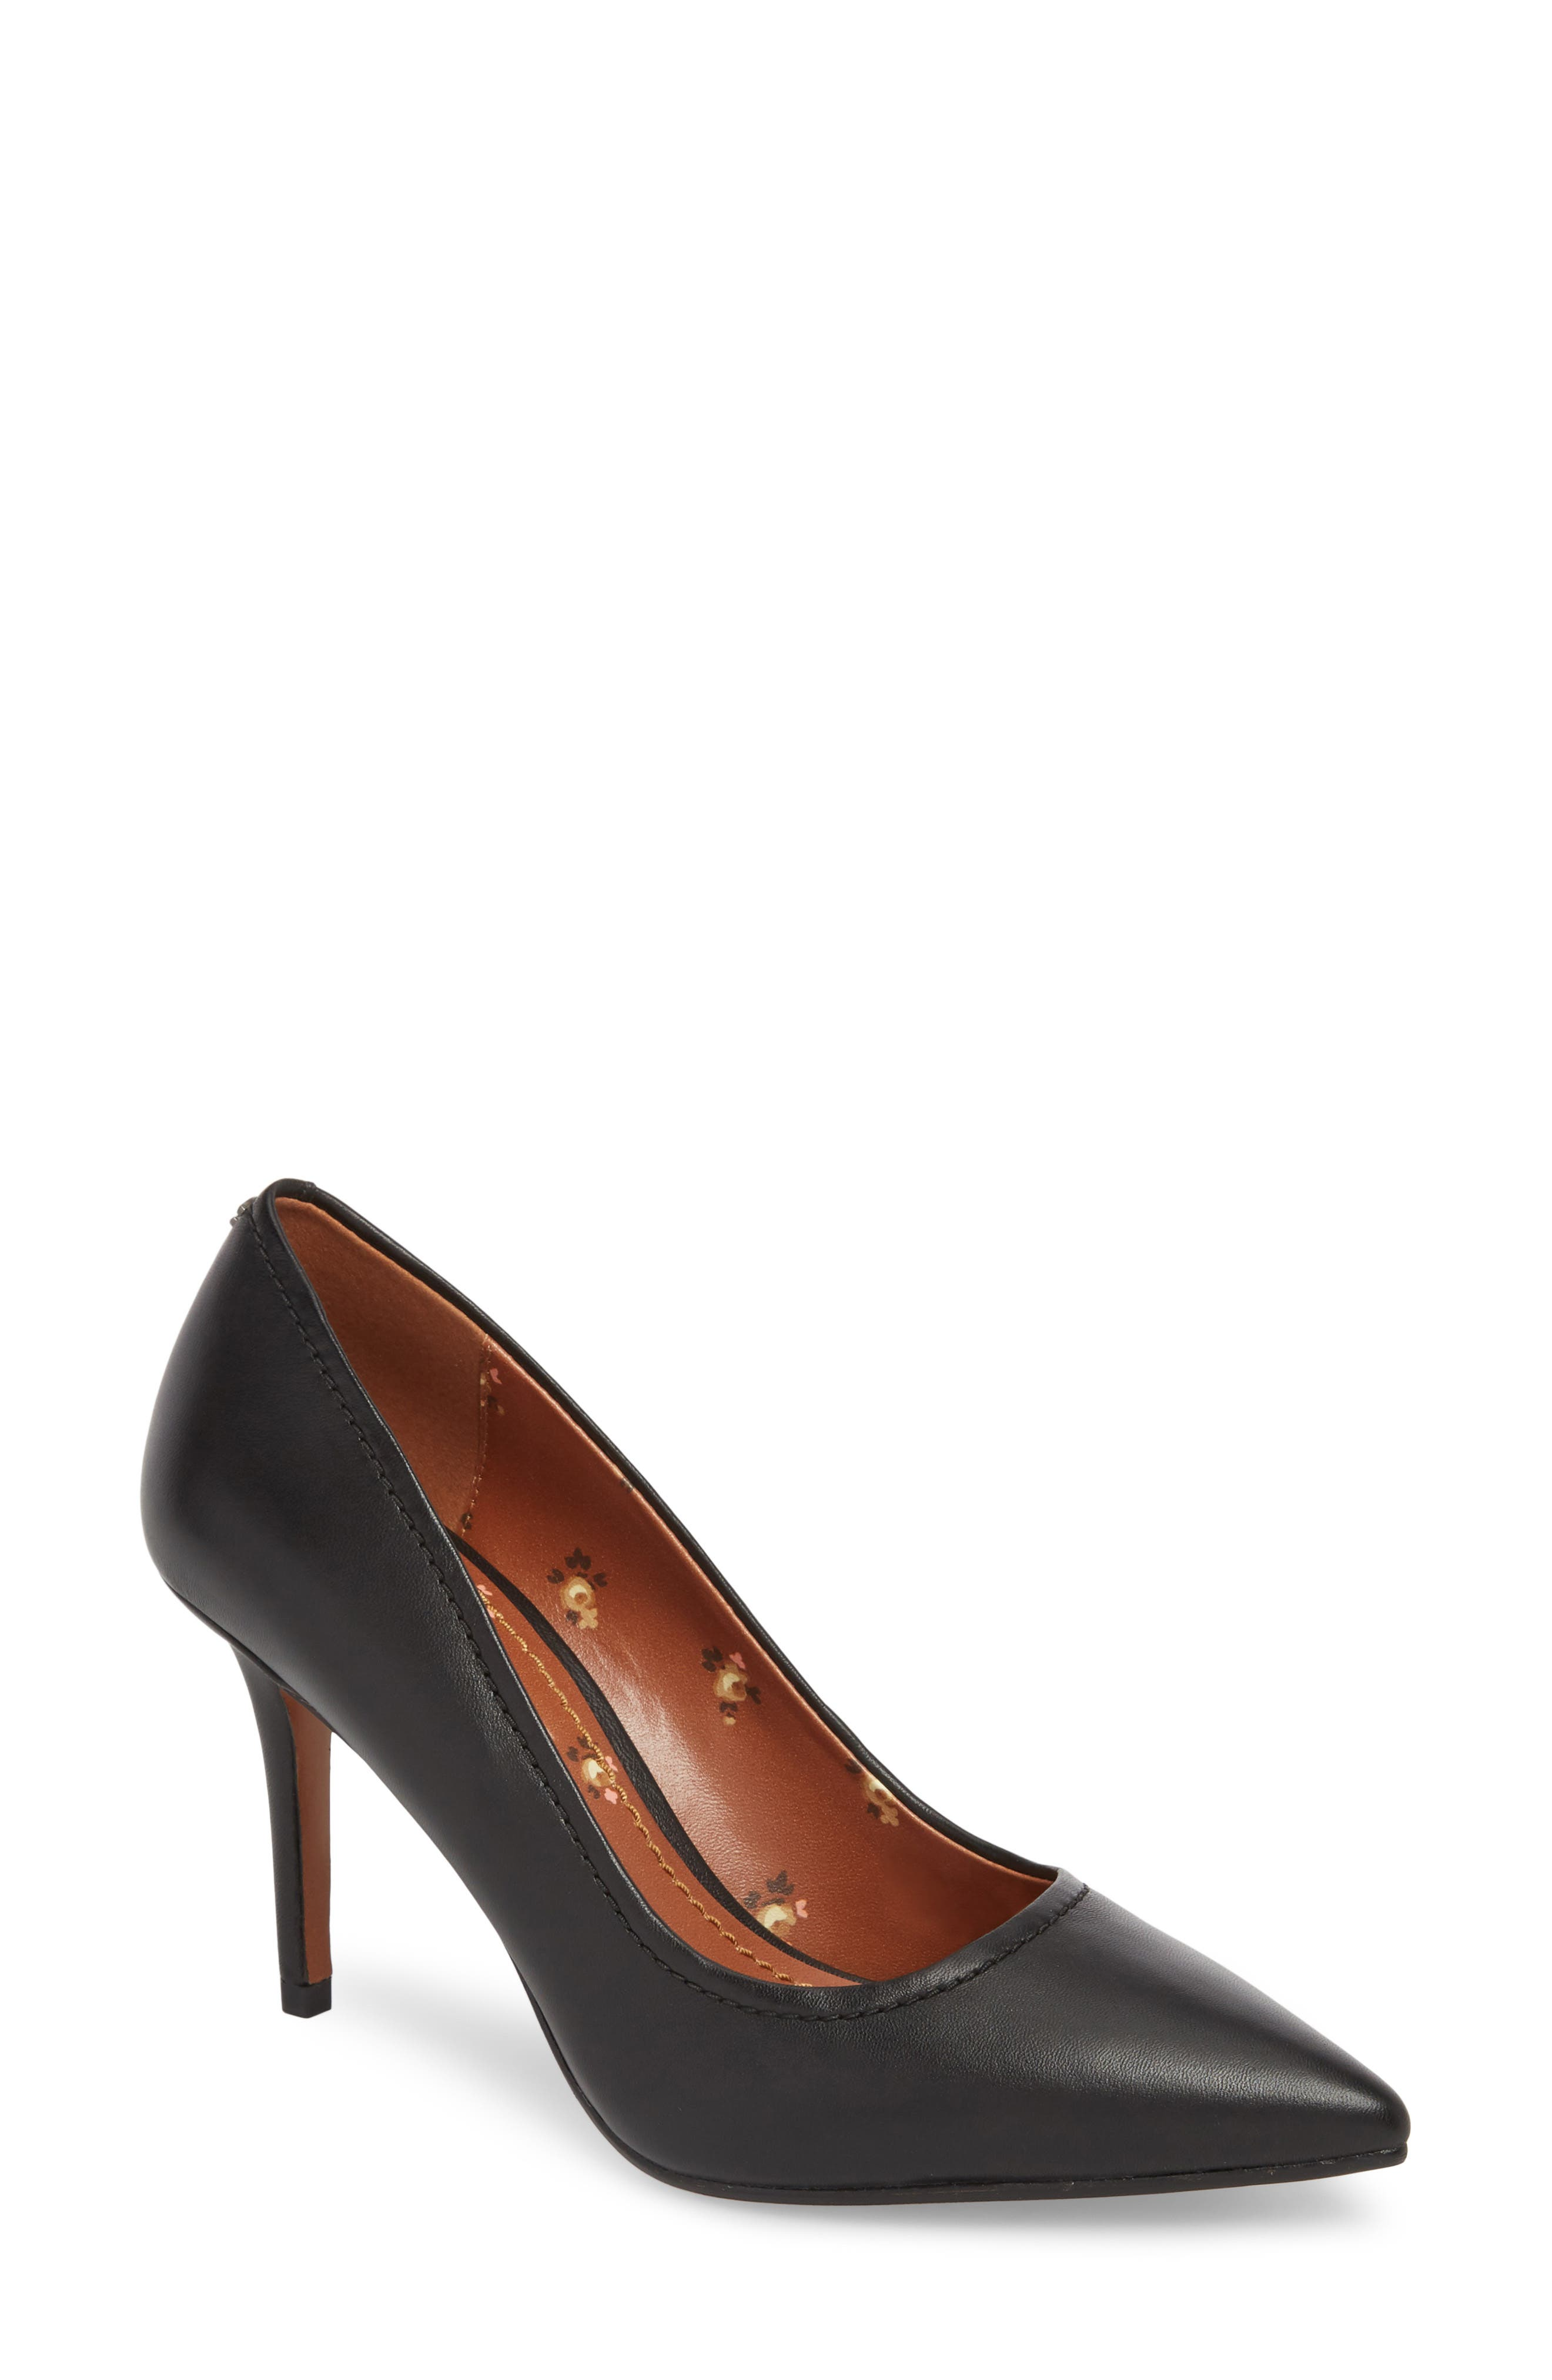 COACH Waverly Pump (Women)